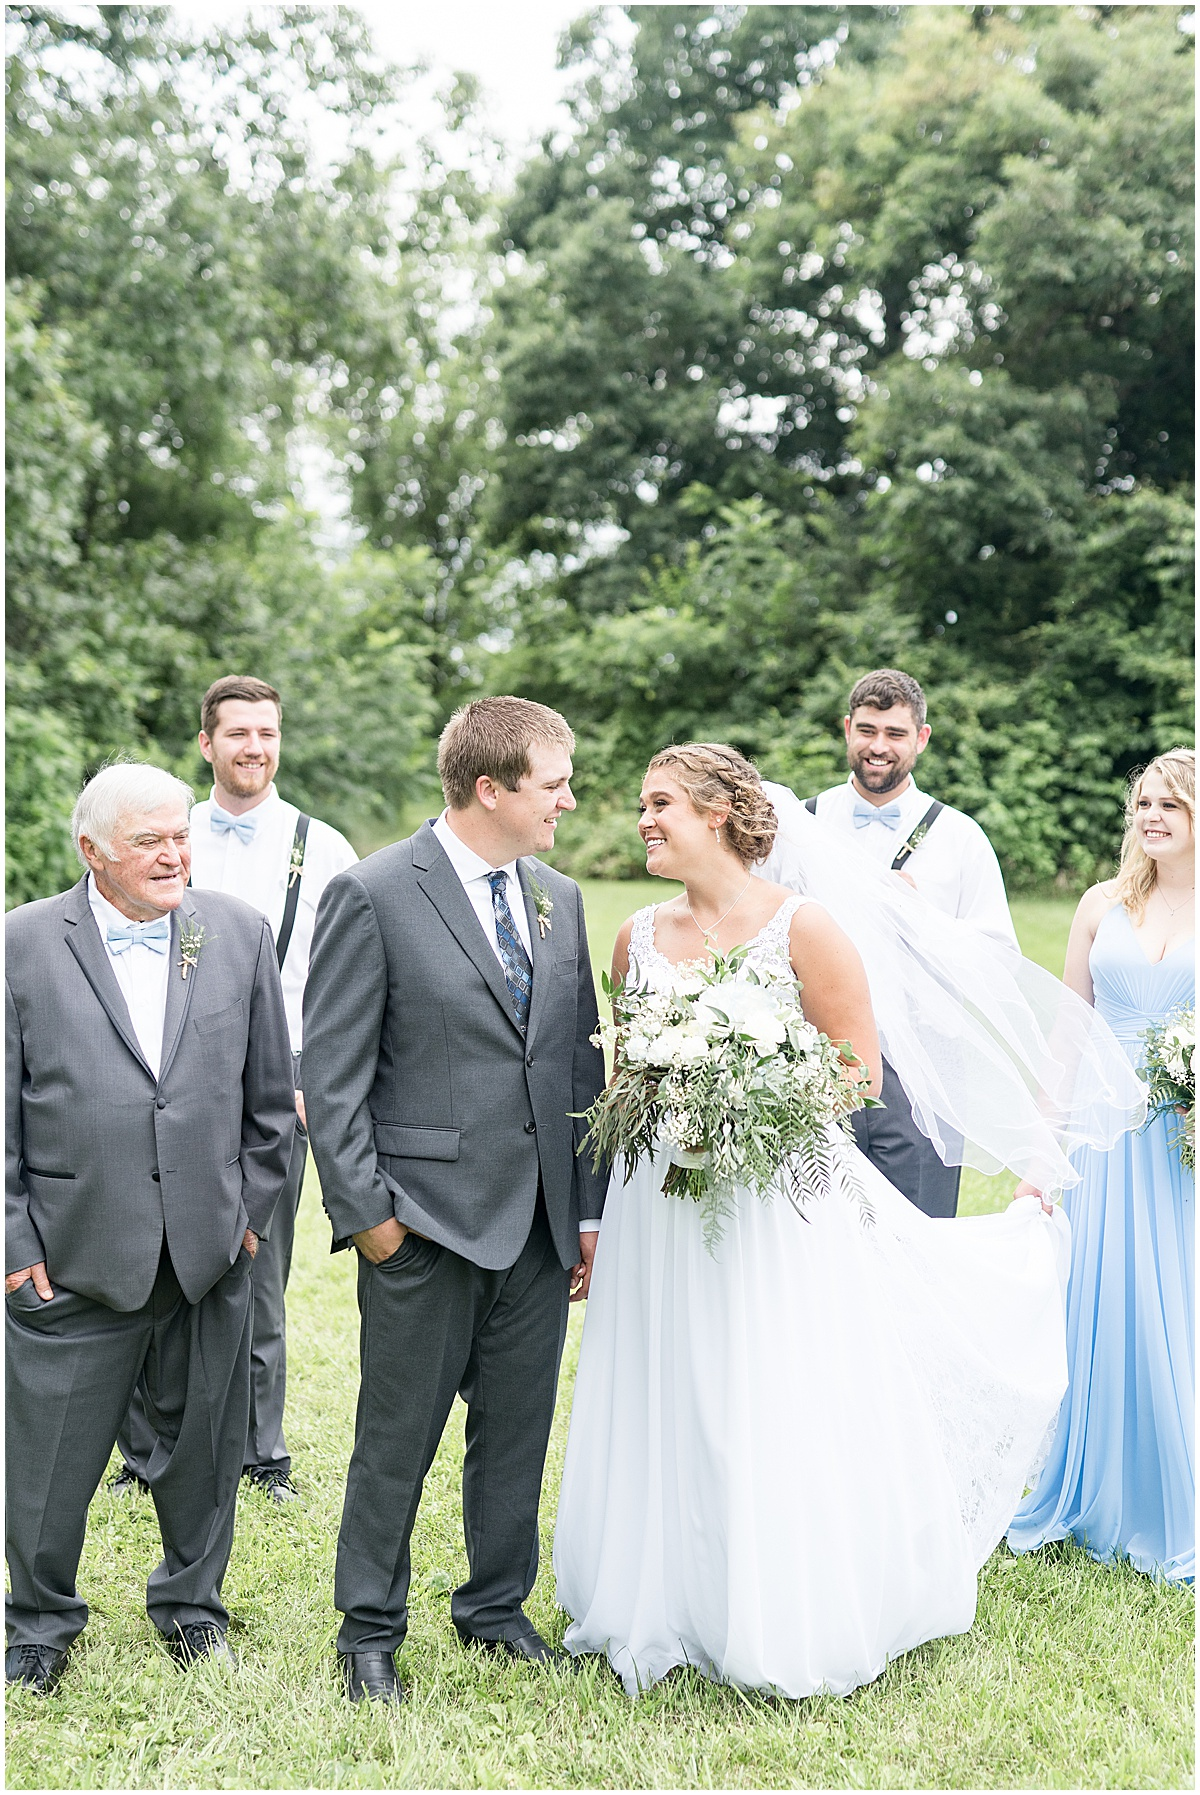 Wedding party photo at Hawk Point Acres Wedding in Anderson, Indiana